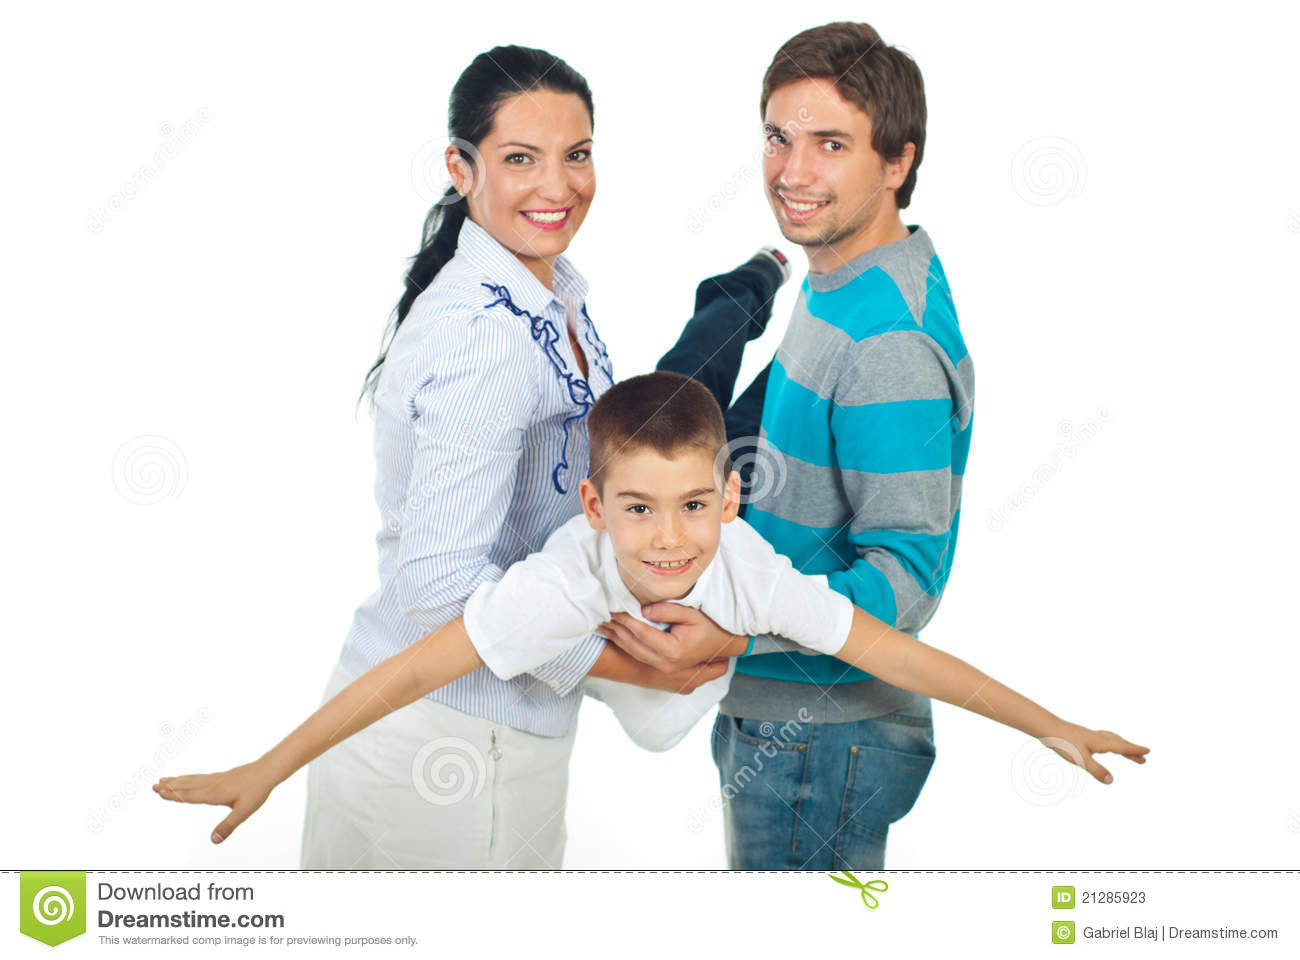 parents presuures on their children Parents of teenagers soon realize that they can feel desperately outmatched by the power that peers seem to gain over a child children feel peer pressure and other influence at early ages.